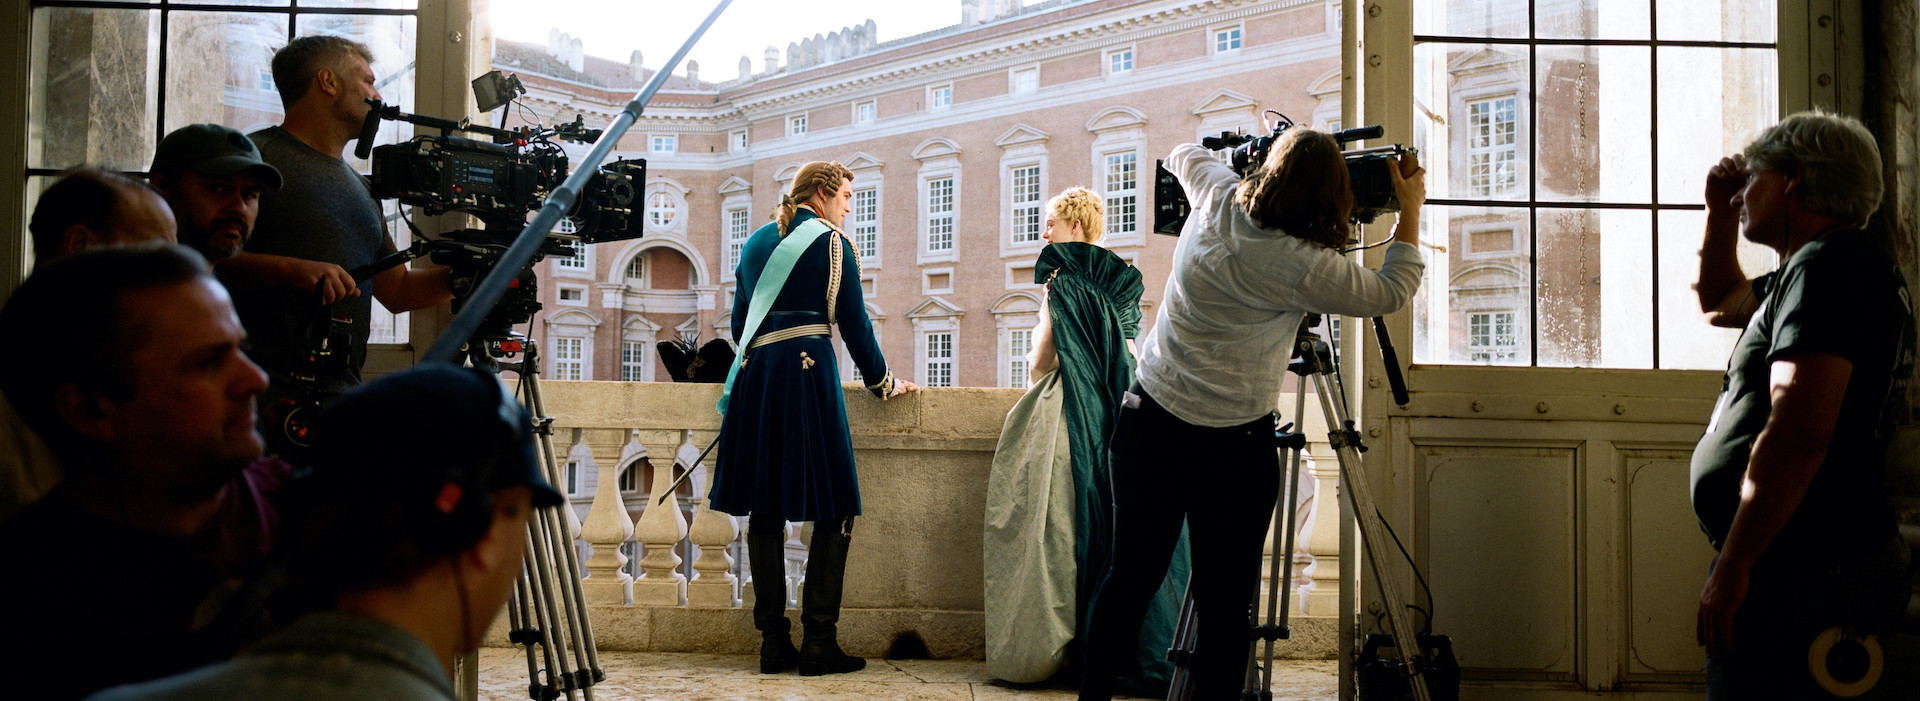 Behind the scenes on the set of The Great.